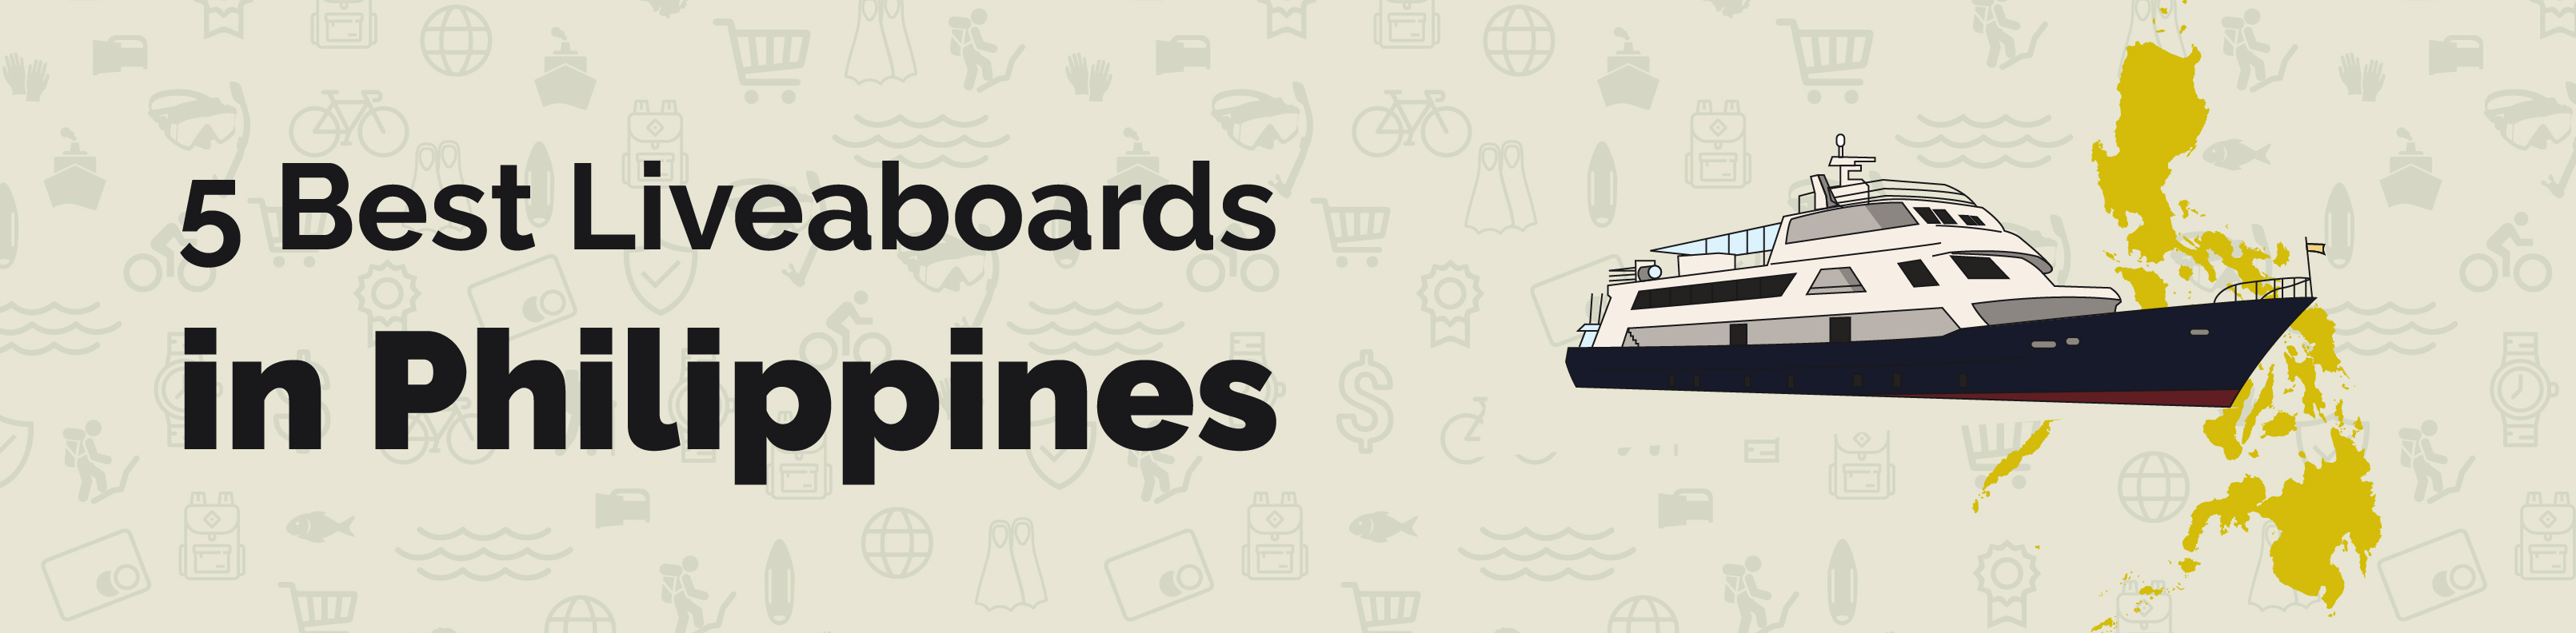 philippines liveaboard reviews banner